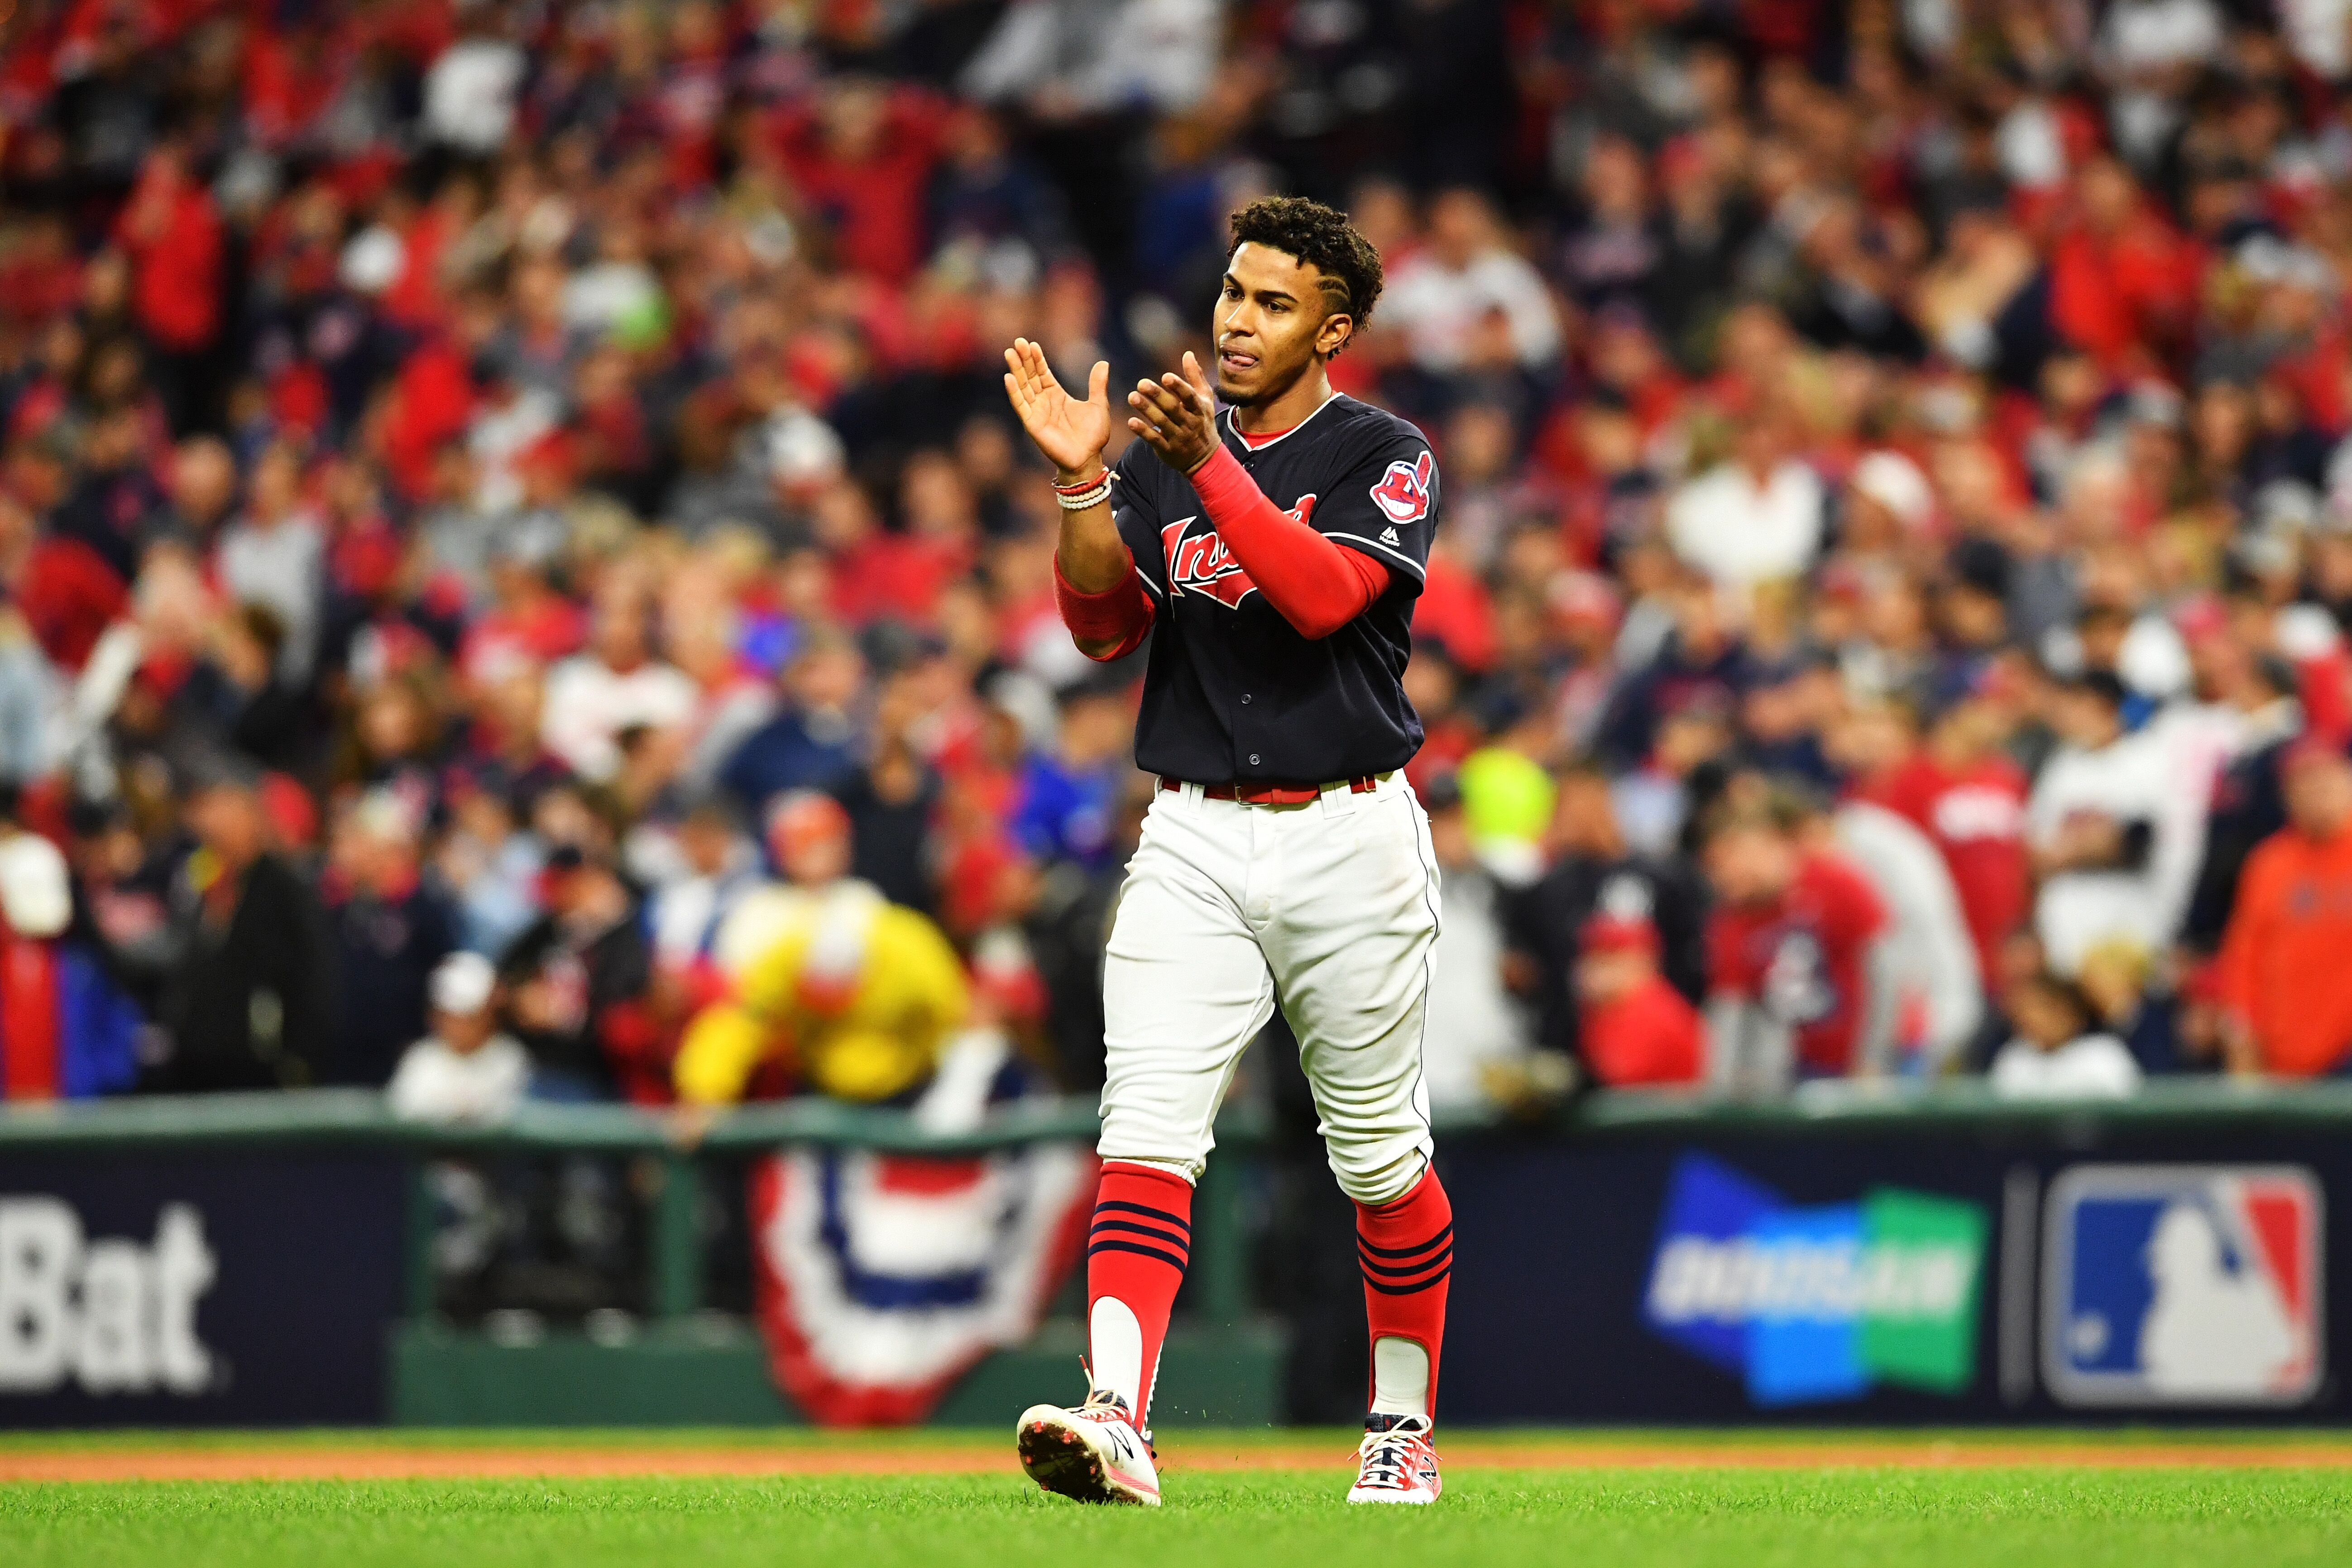 860343046-divisional-round-new-york-yankees-v-cleveland-indians-game-five.jpg